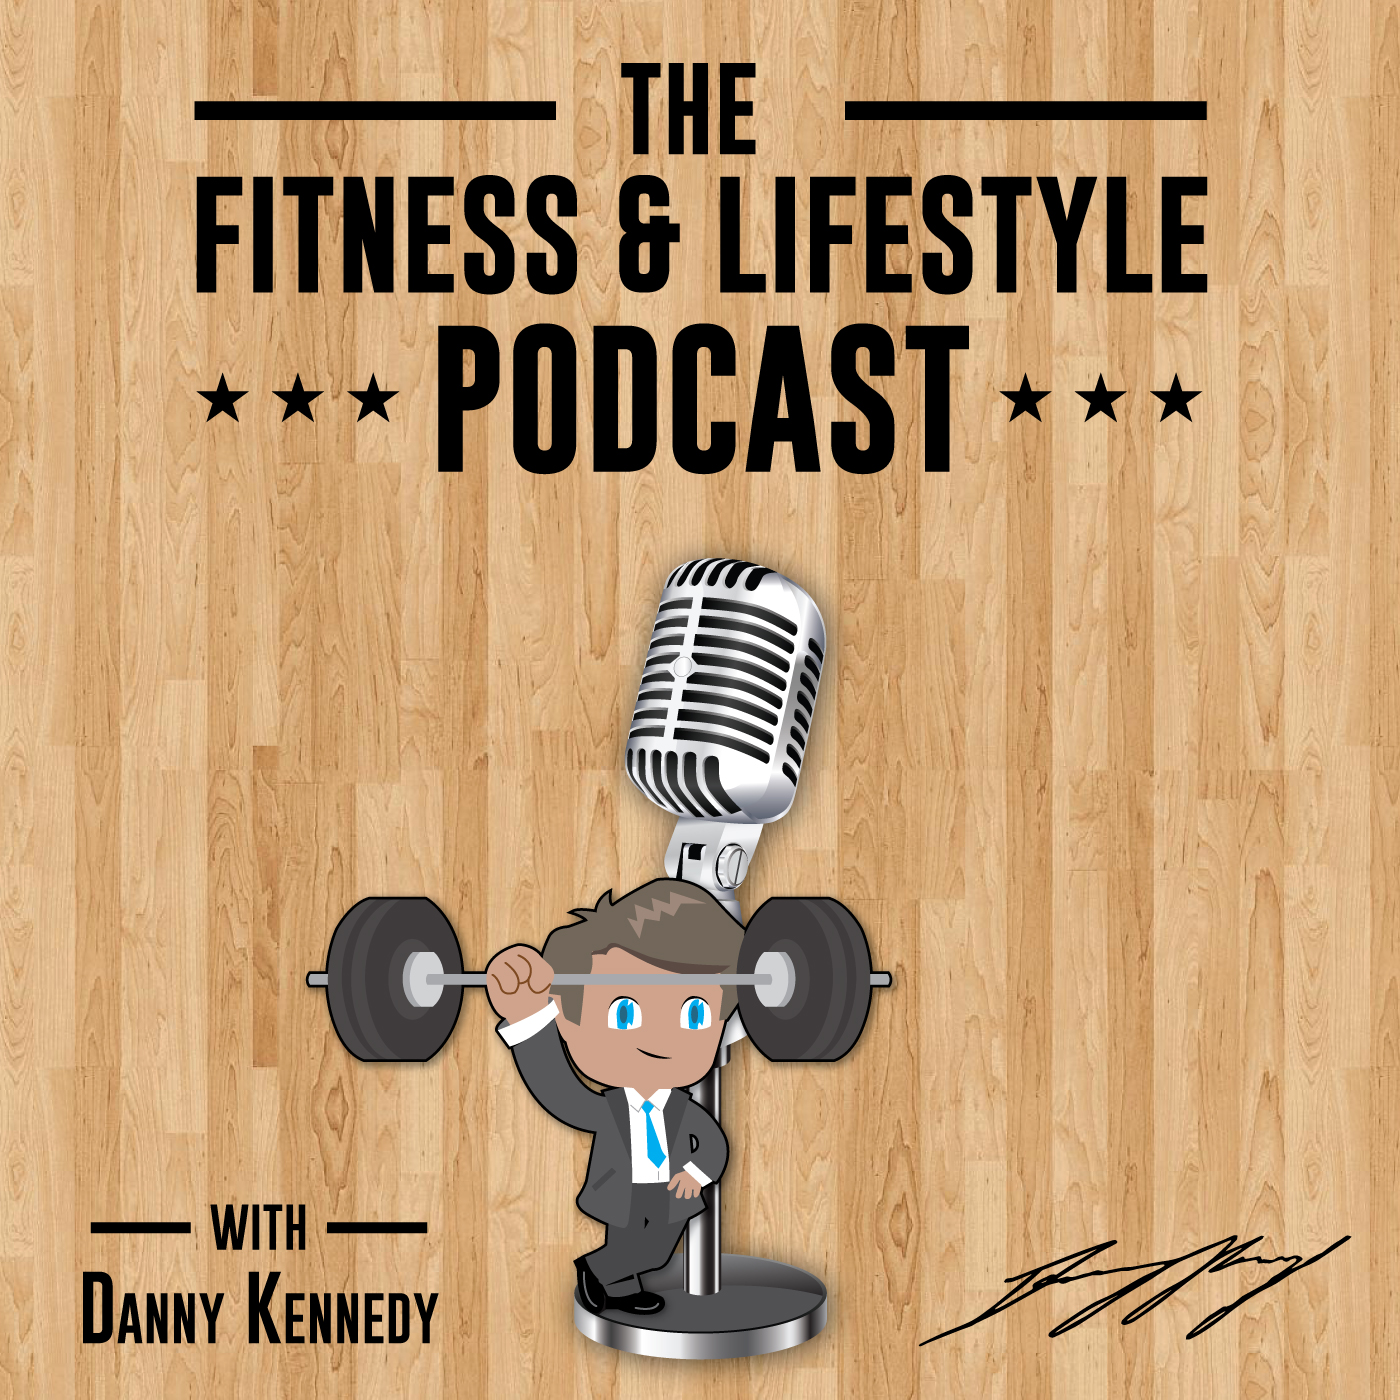 The Fitness & Lifestyle Podcast